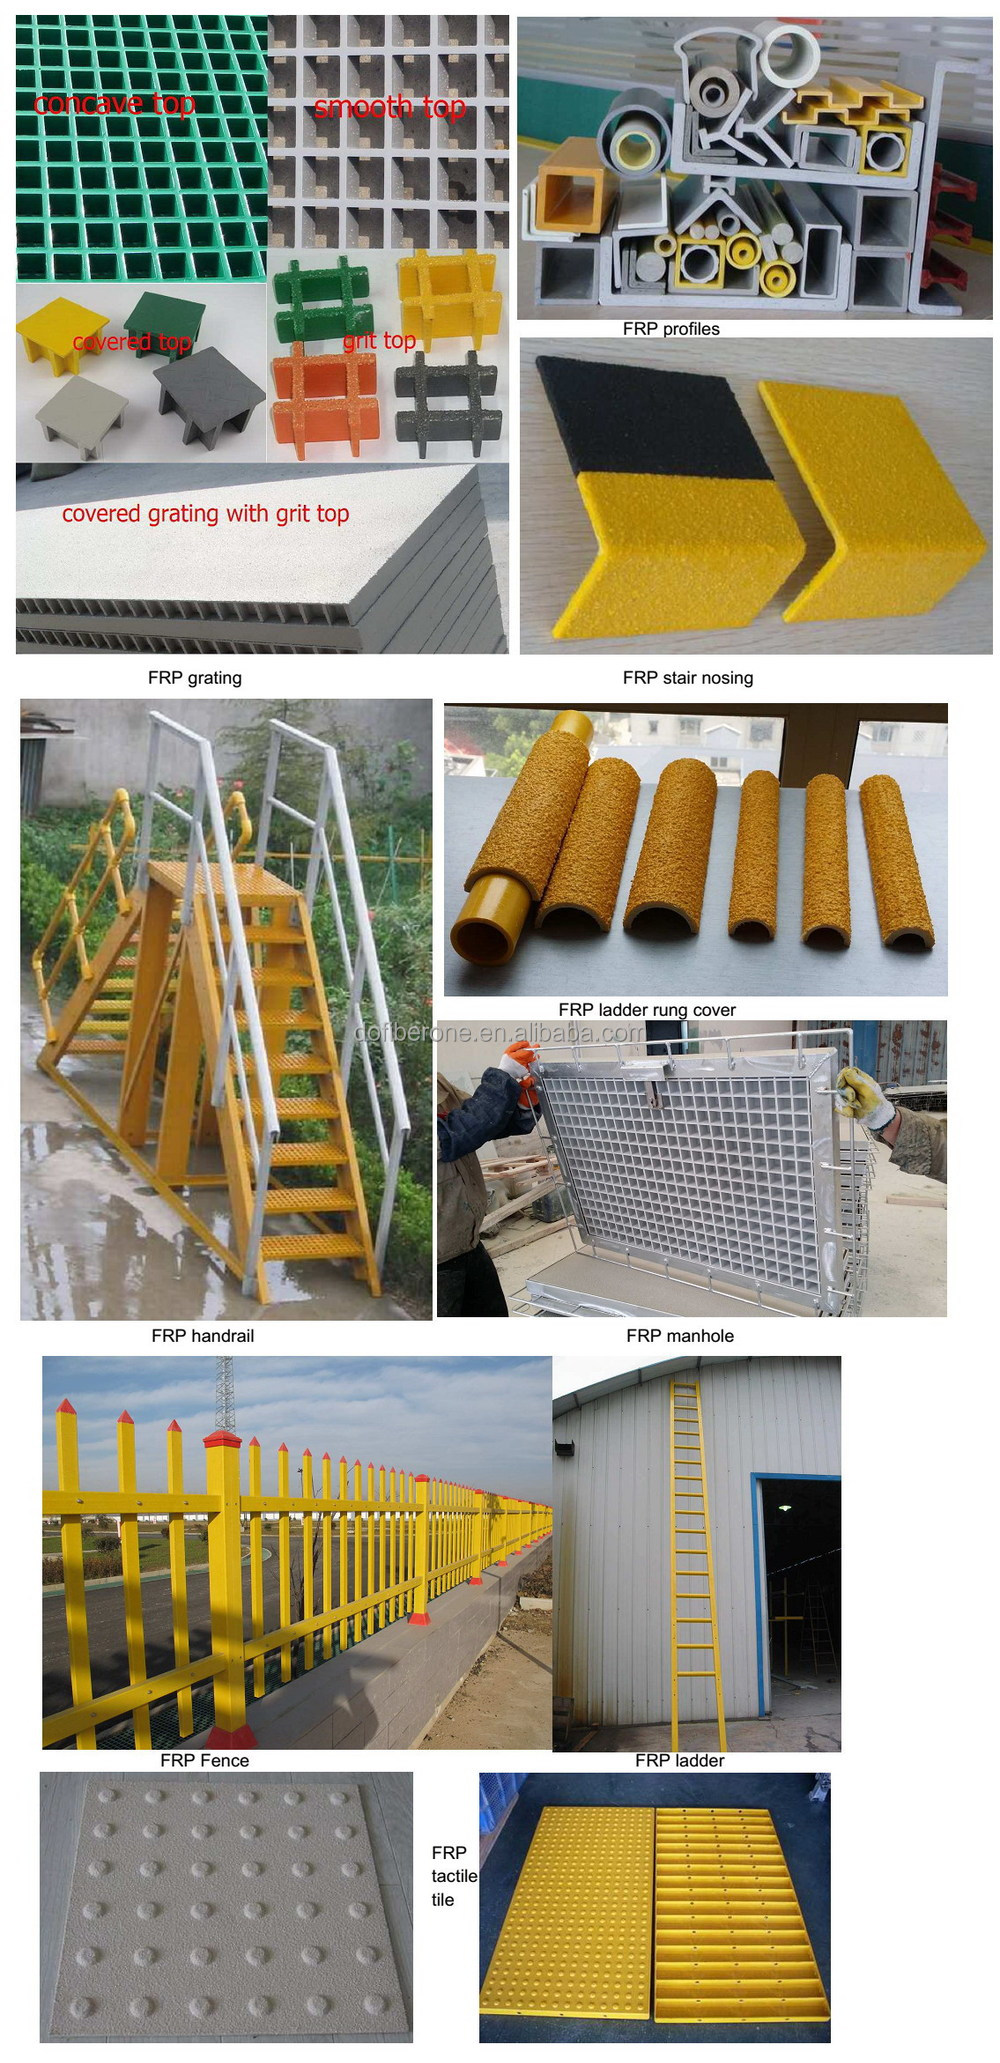 GRP fibreglass handrail connector